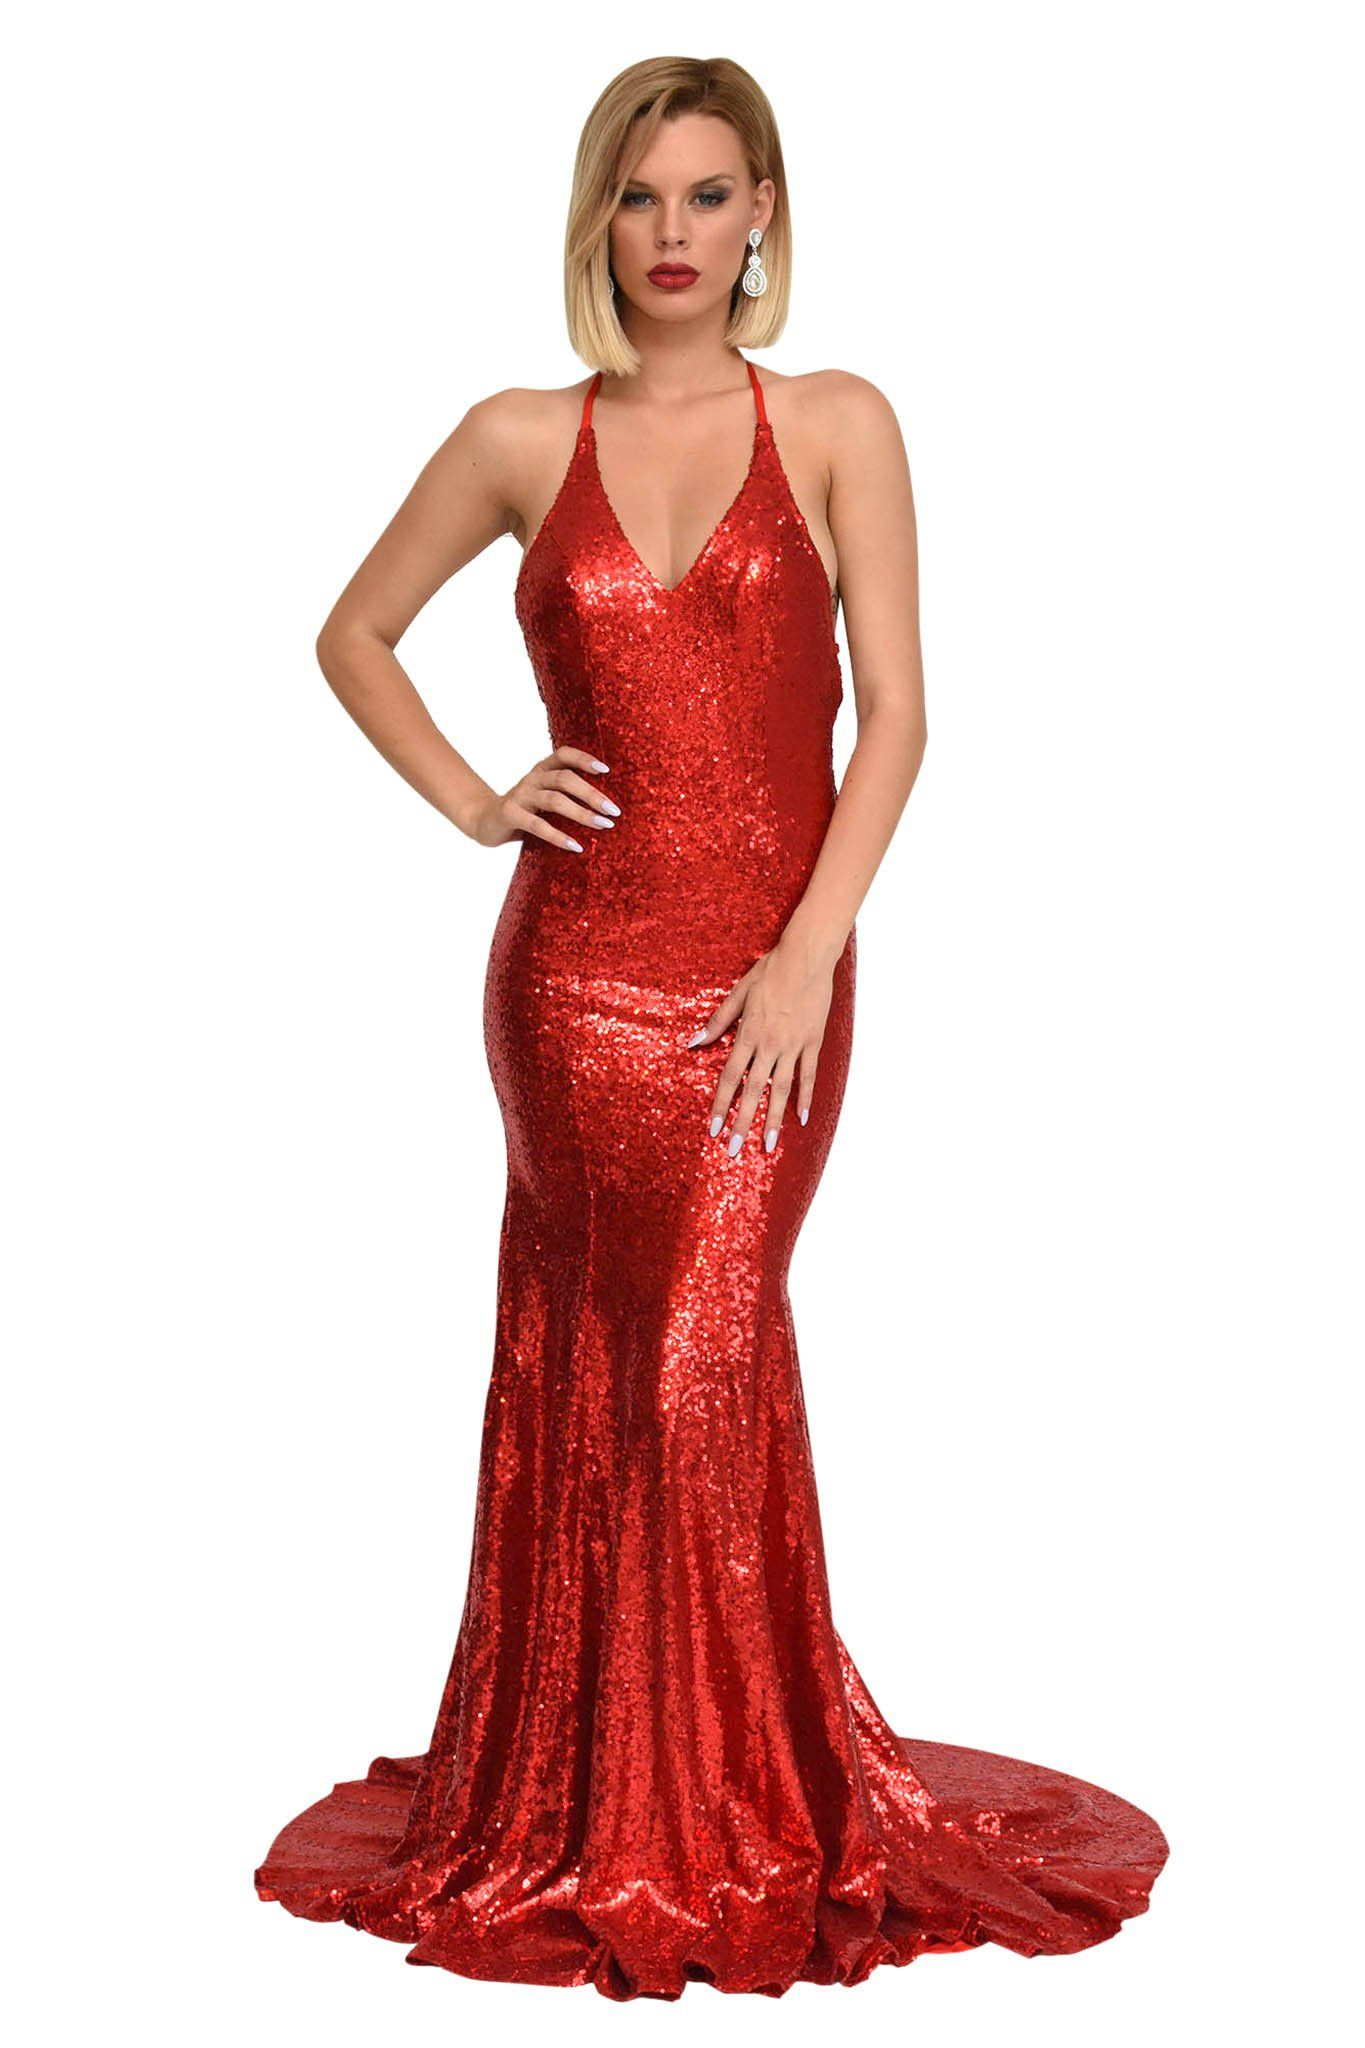 Red sequin sleeveless long evening gown with deep V neckline, crisscross back straps, V open back, and long train